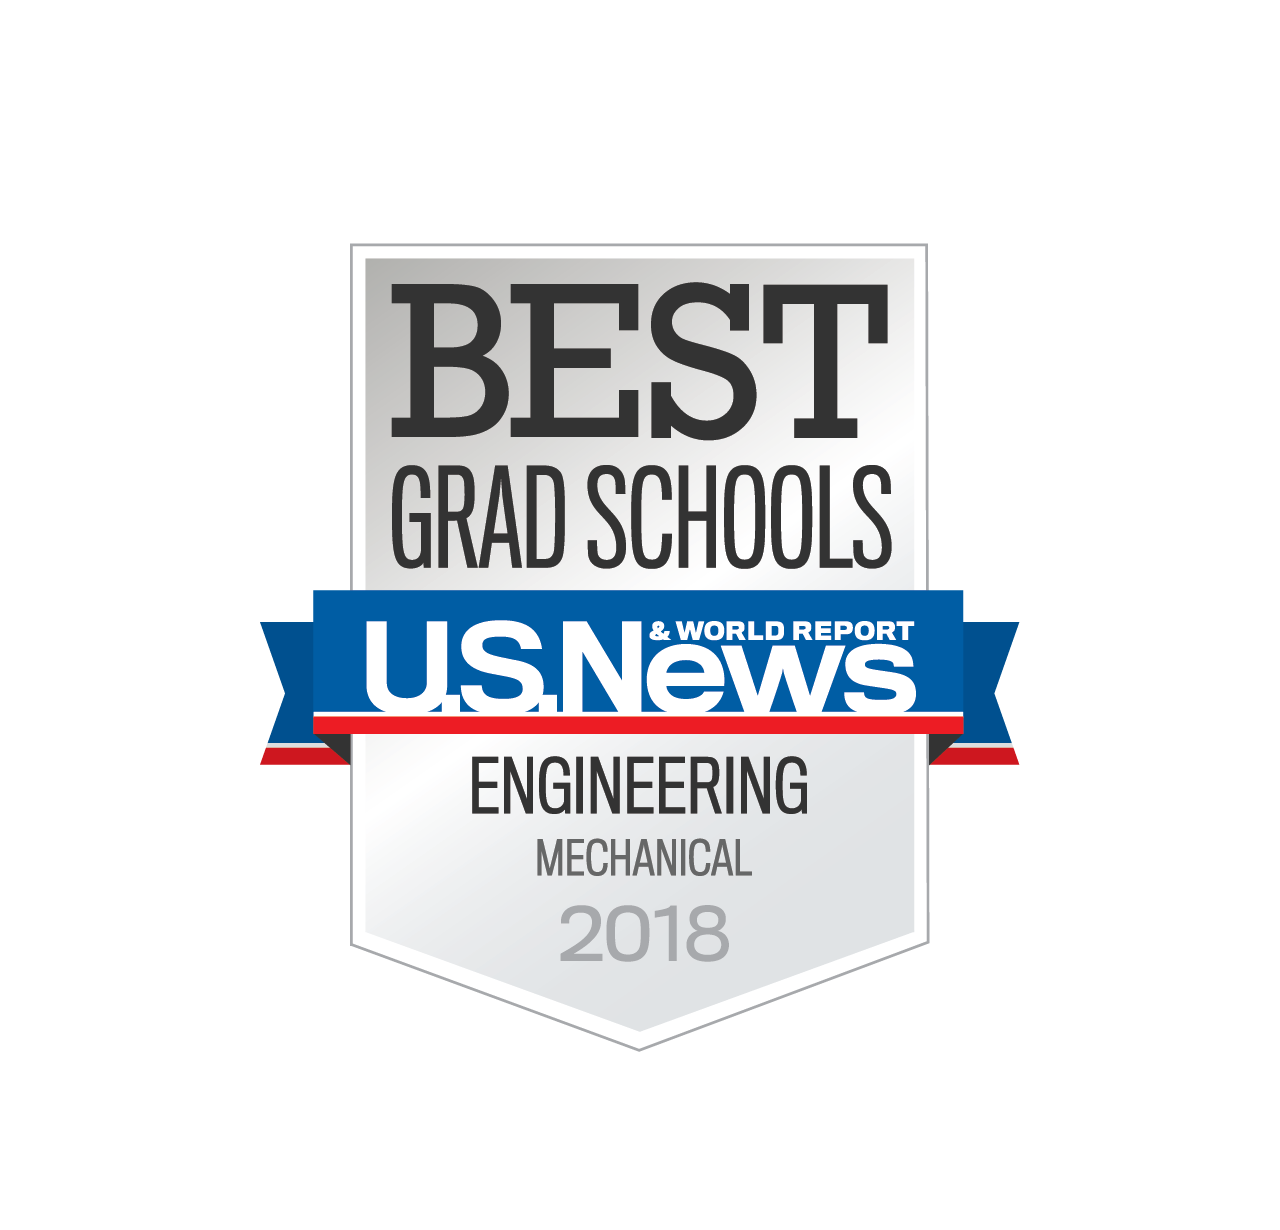 US News badge - Best Grad Schools - Mechanical Engineering 2018